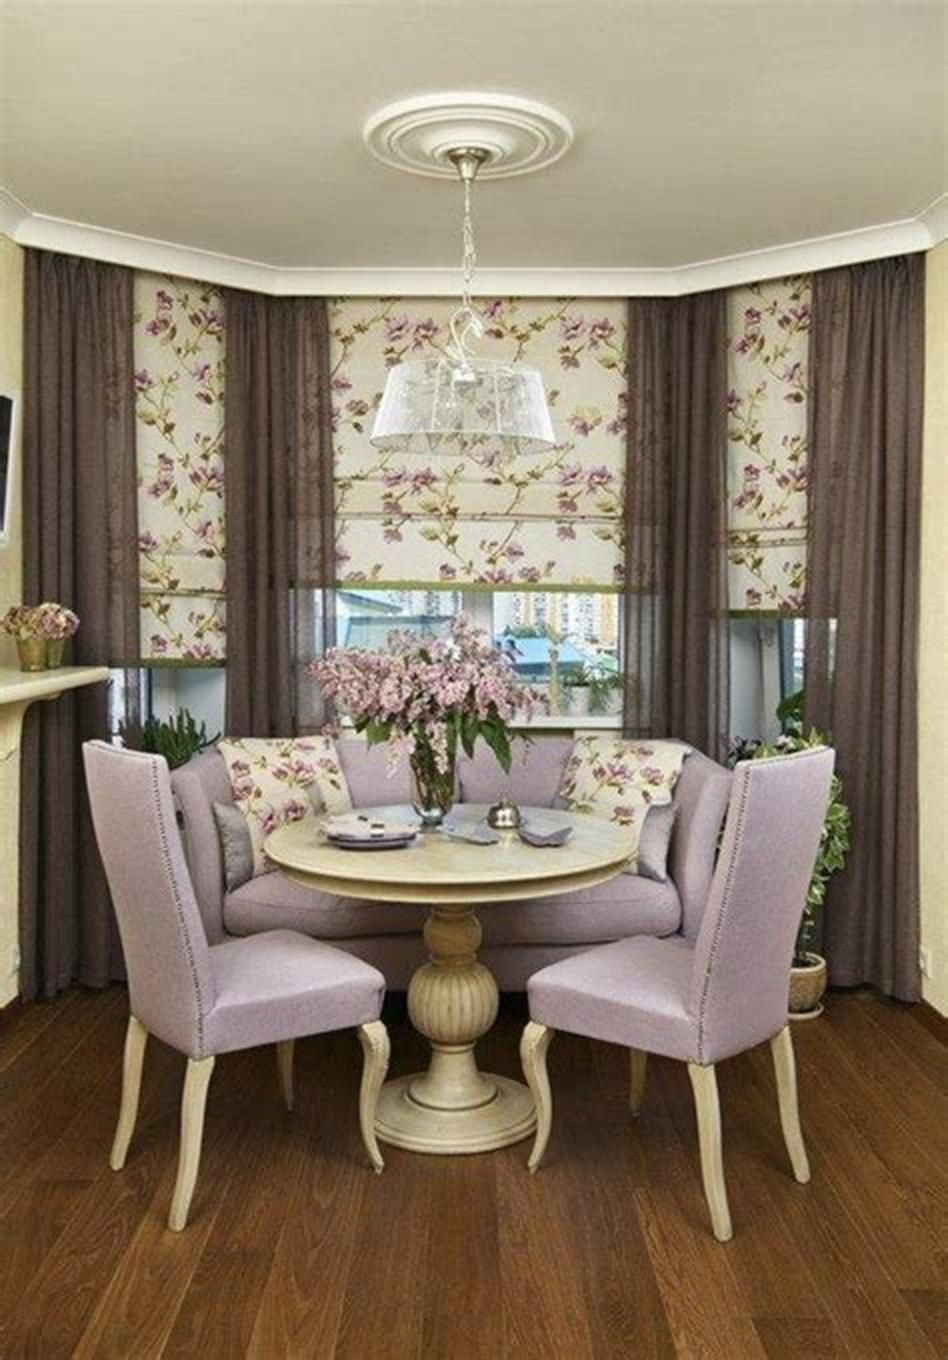 21 Creative Curtains And Window Coverings Ideas 35 Dining Room Windows Breakfast Nook Curtains Decor